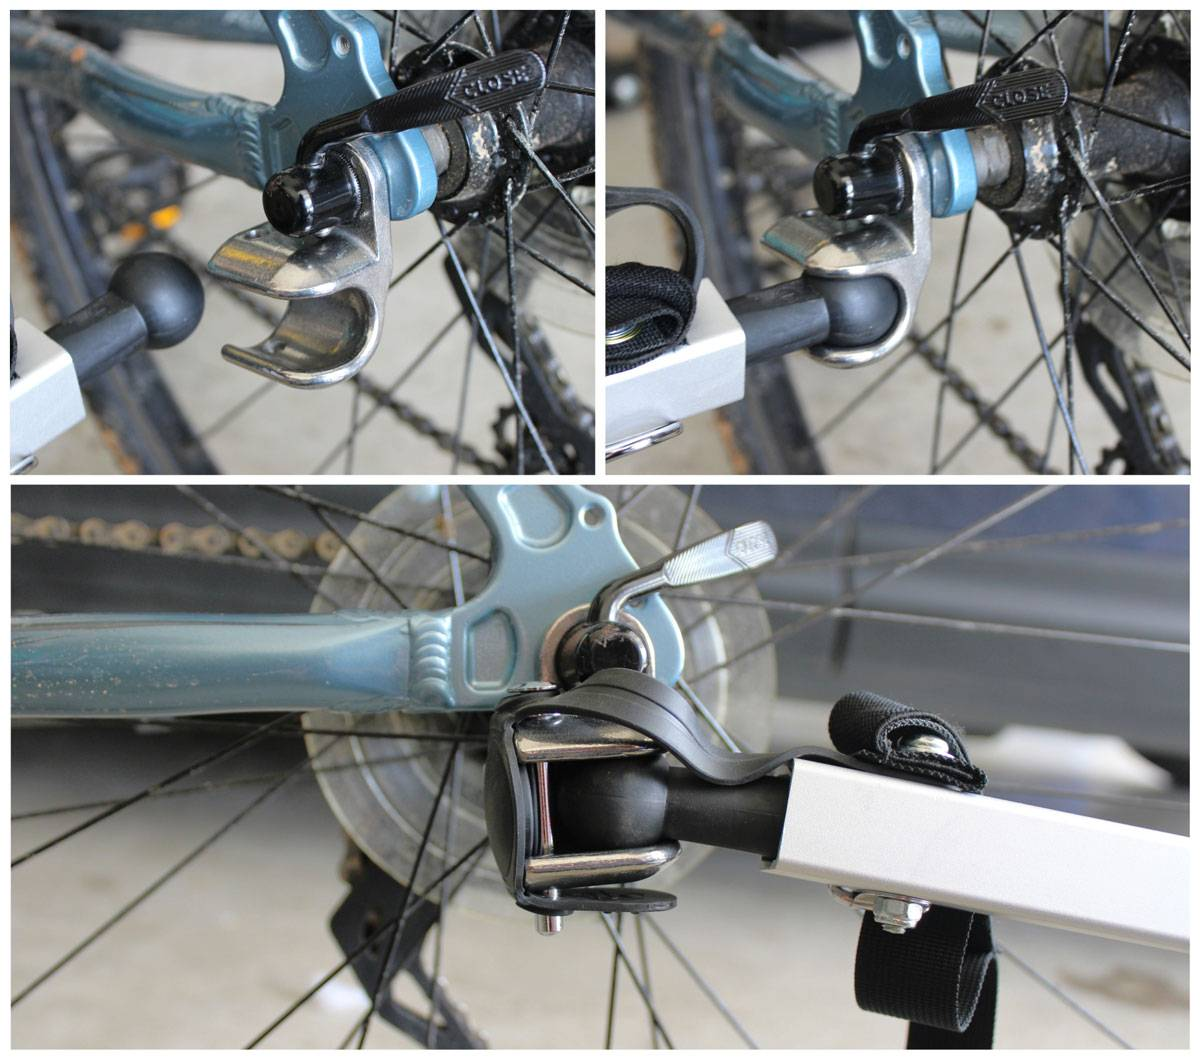 Round socket hitch of Thule Cadence attached to rear axle of adult bike